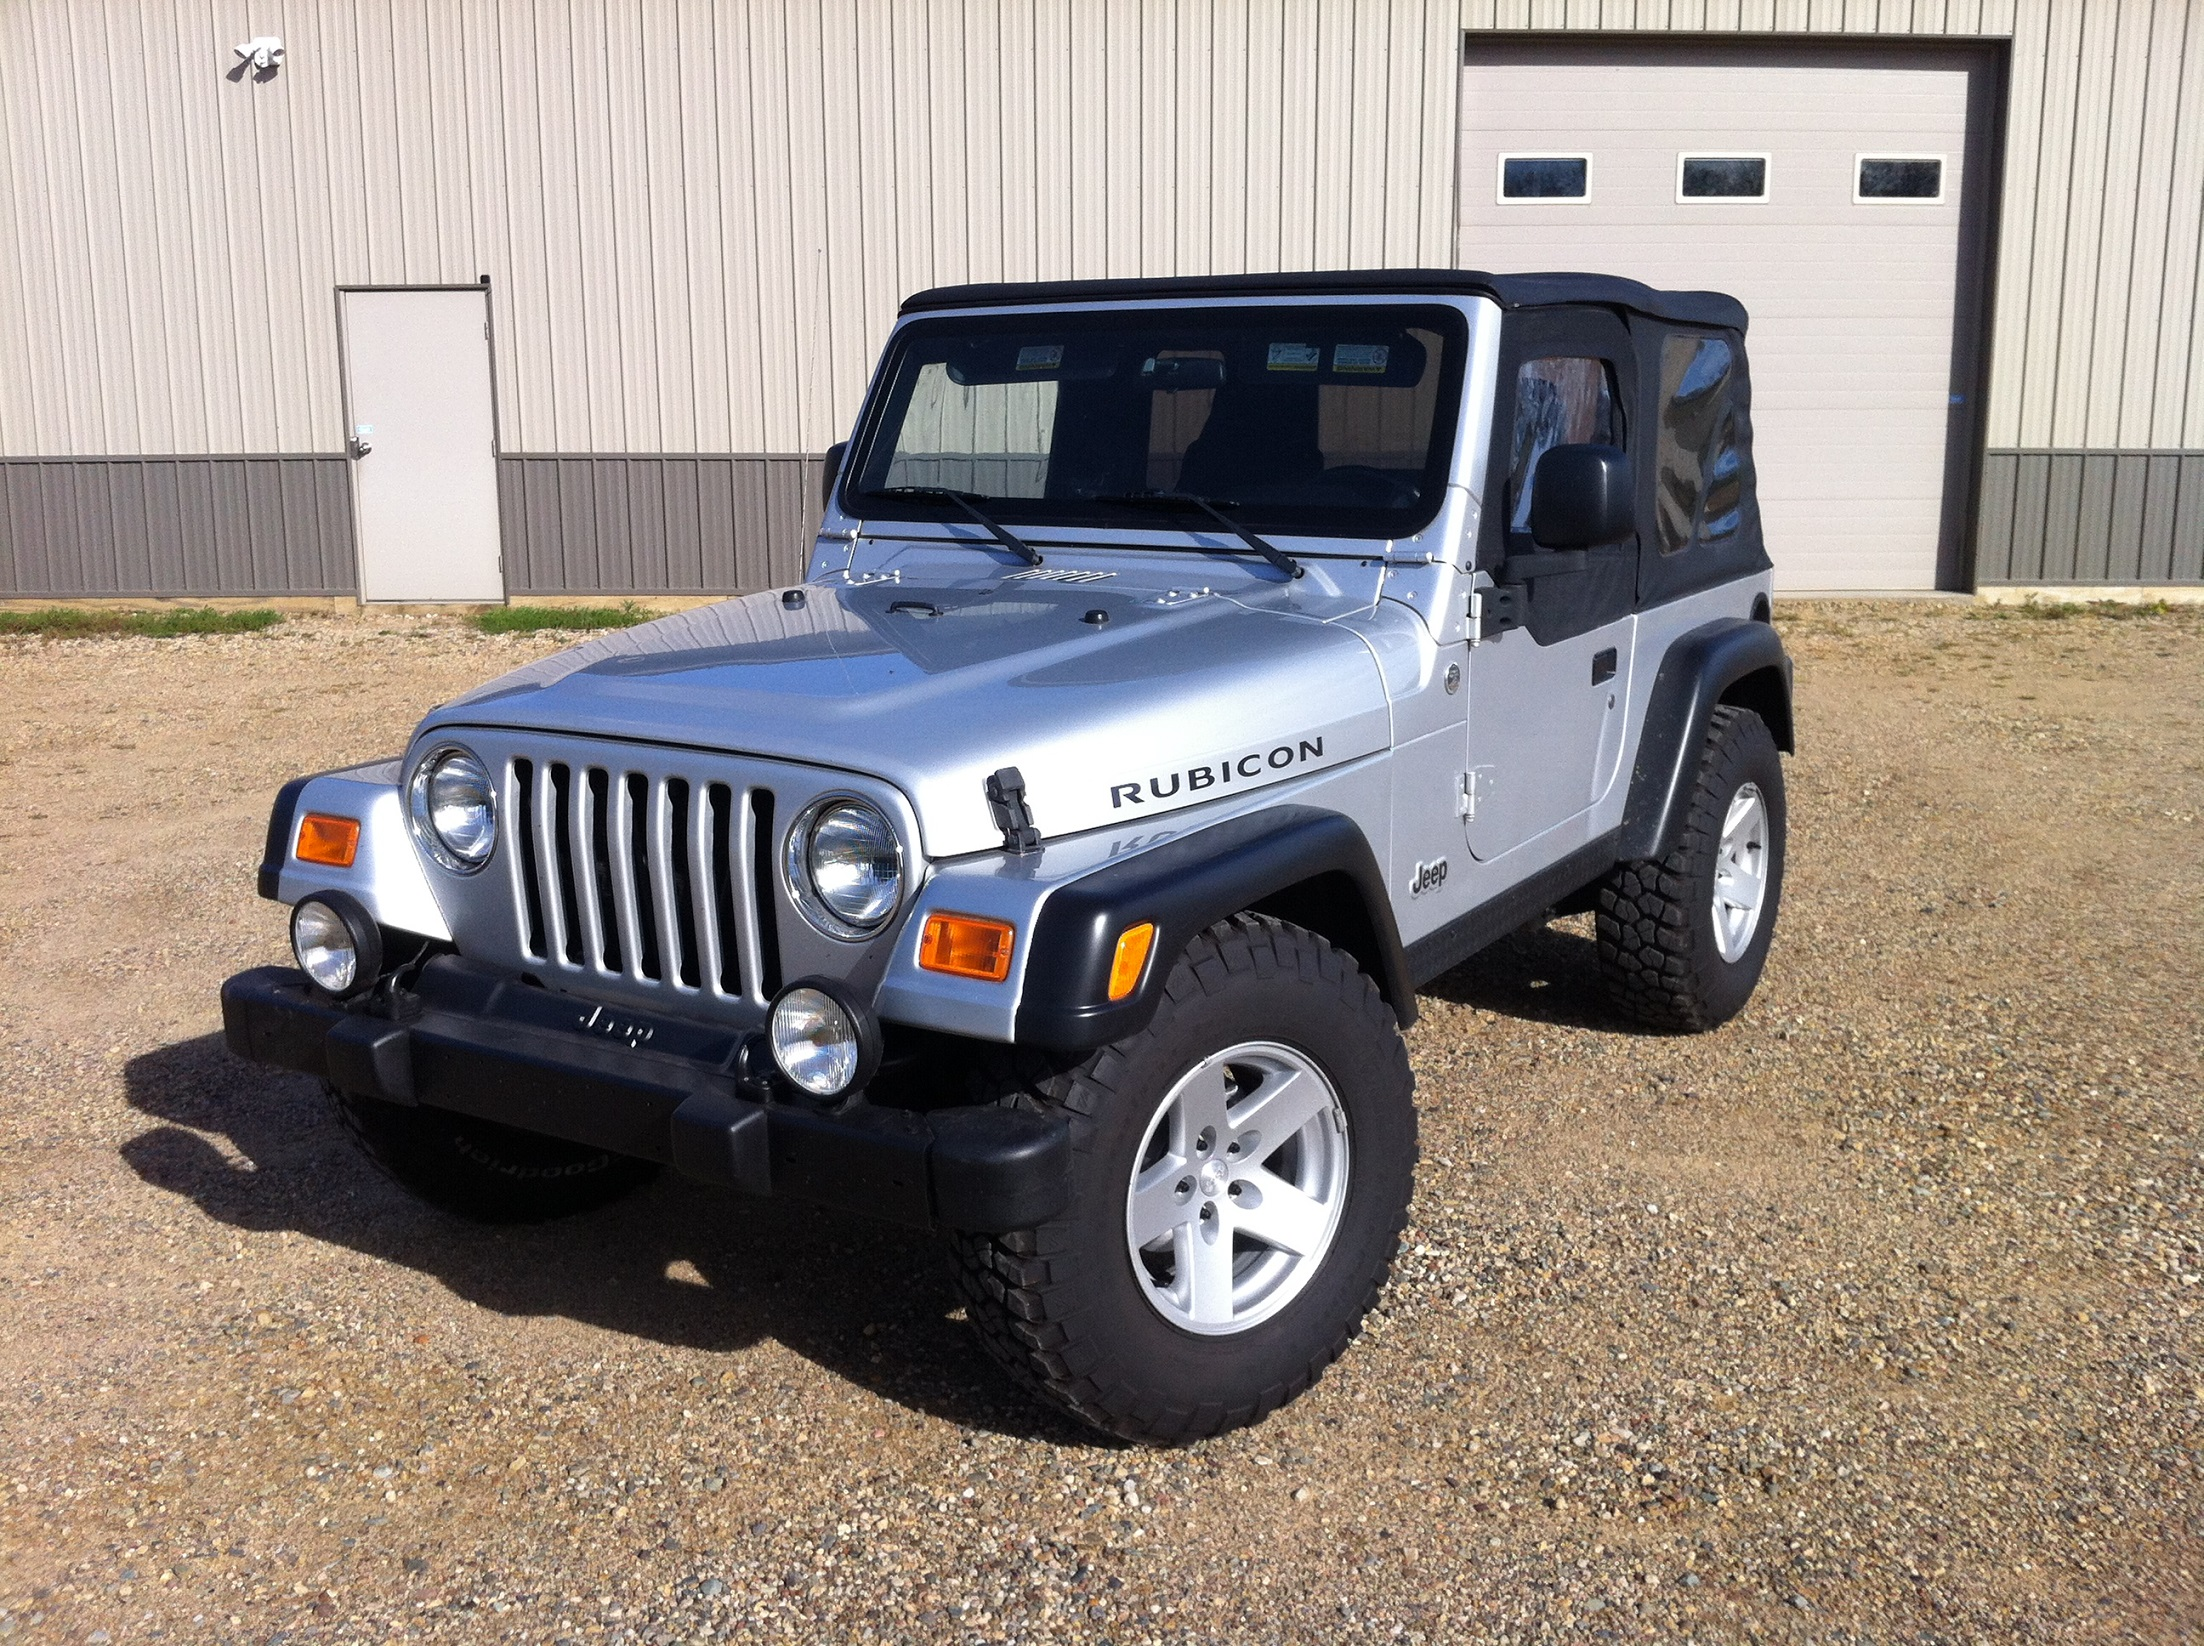 2006 Jeep Wrangler Rubicon Silver in GA 0.jpg